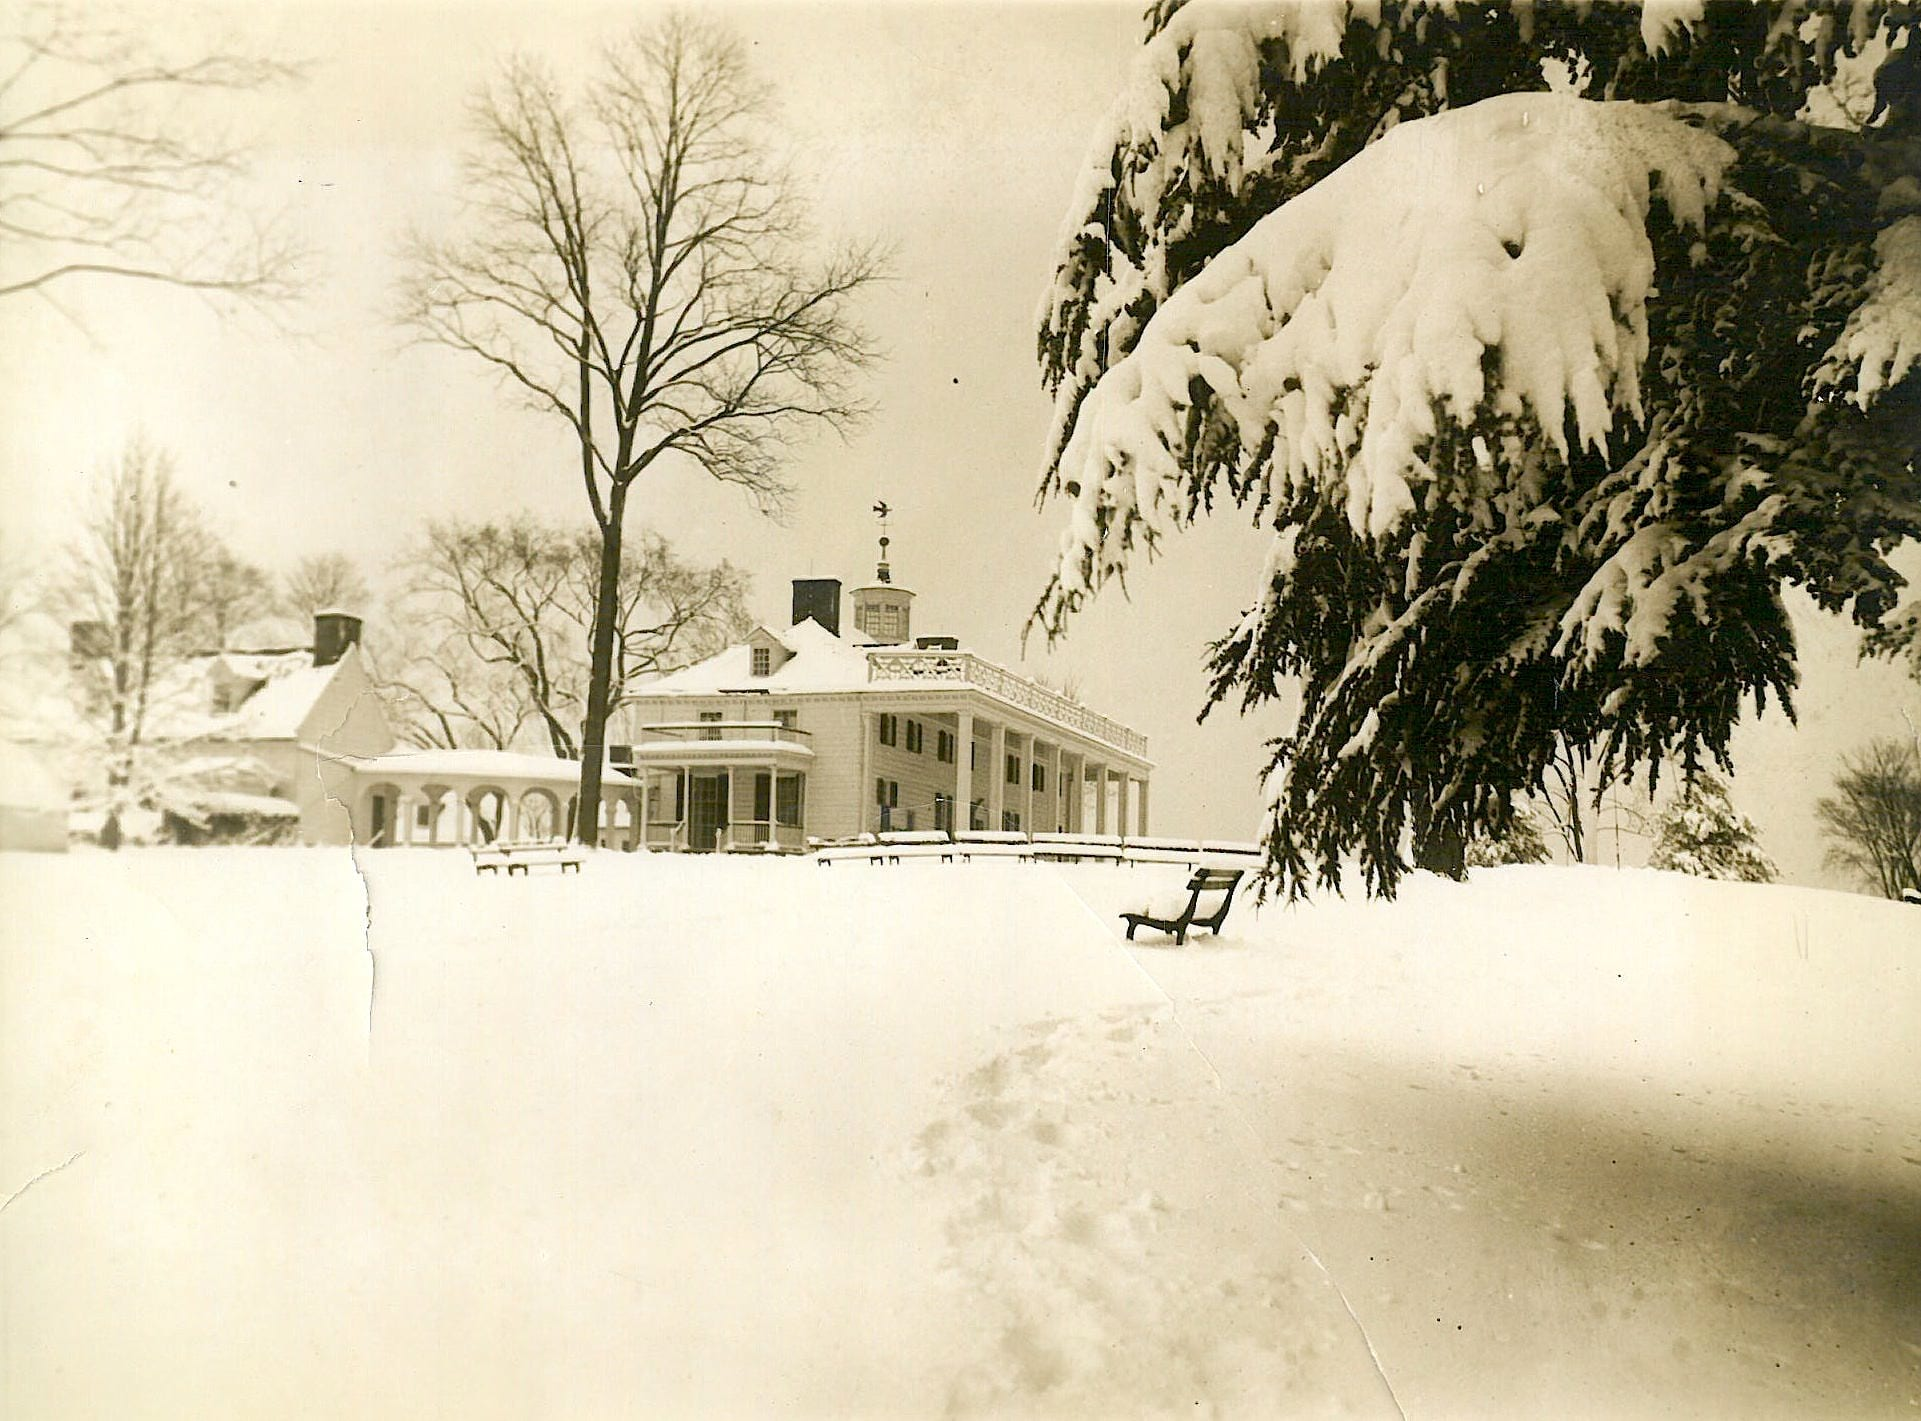 Mount Vernon in the snow